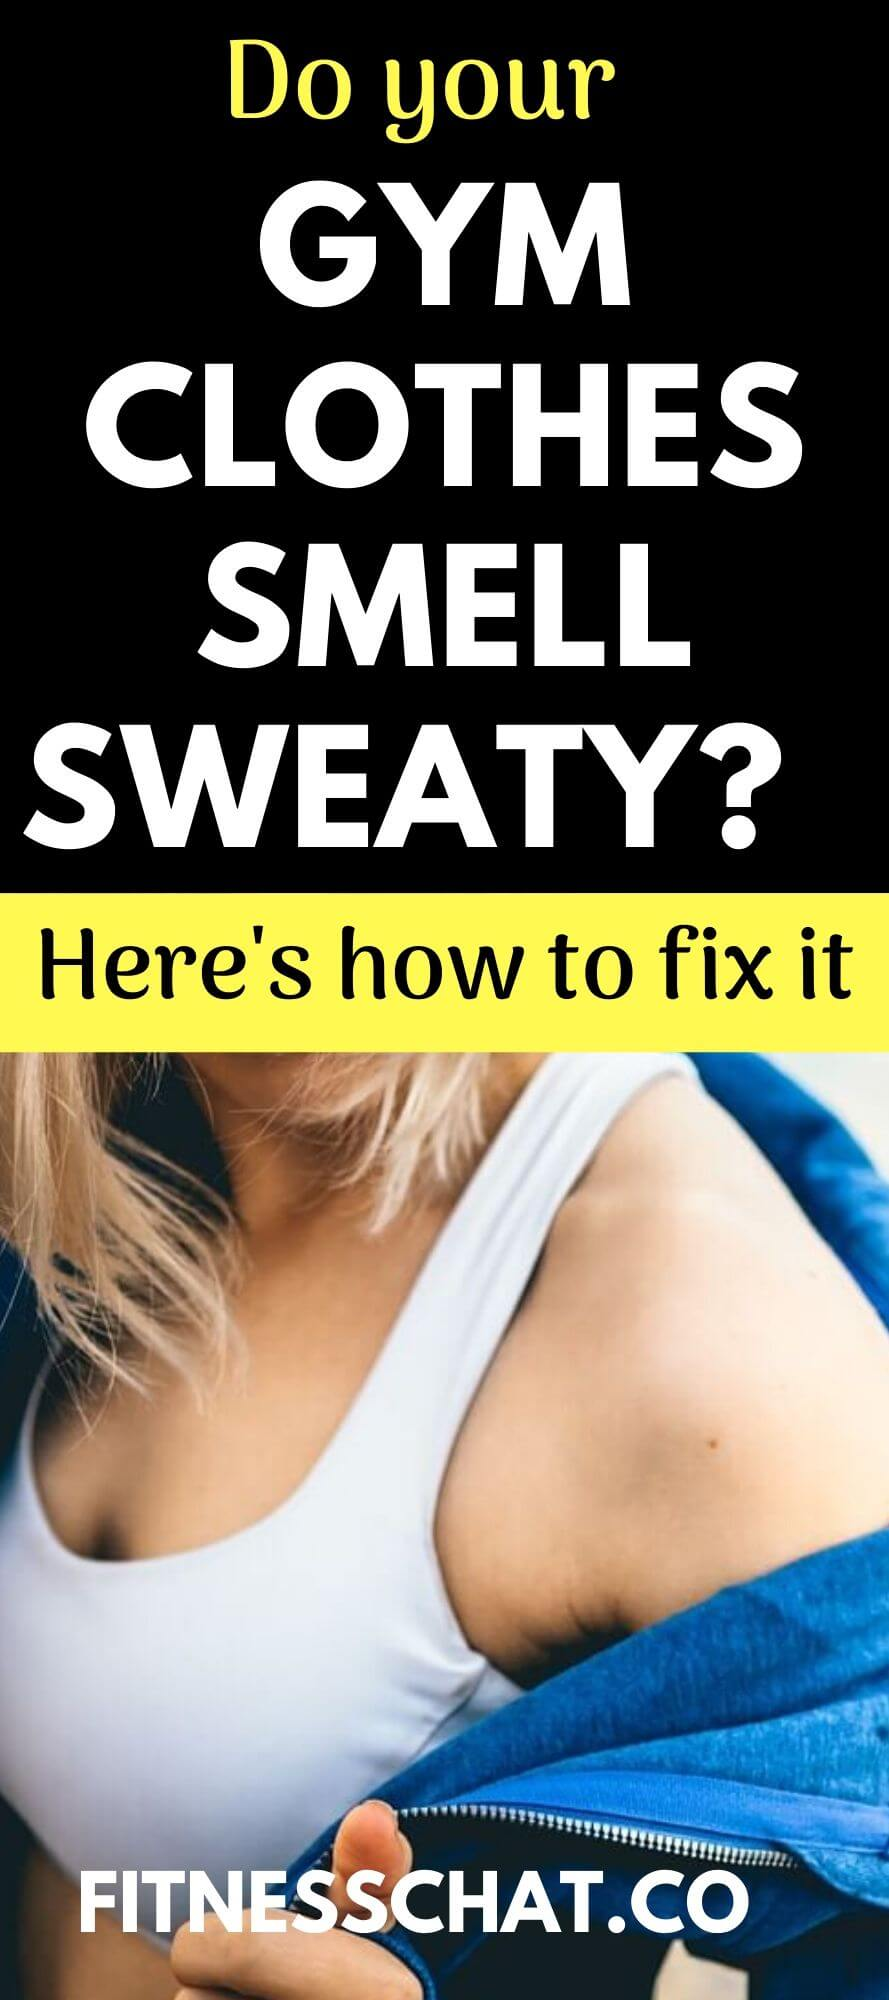 How To Get The Musty Smell Out Of Gym Clothes Gym Outfit Cute Workout Leggings Workout Leggings With Pockets